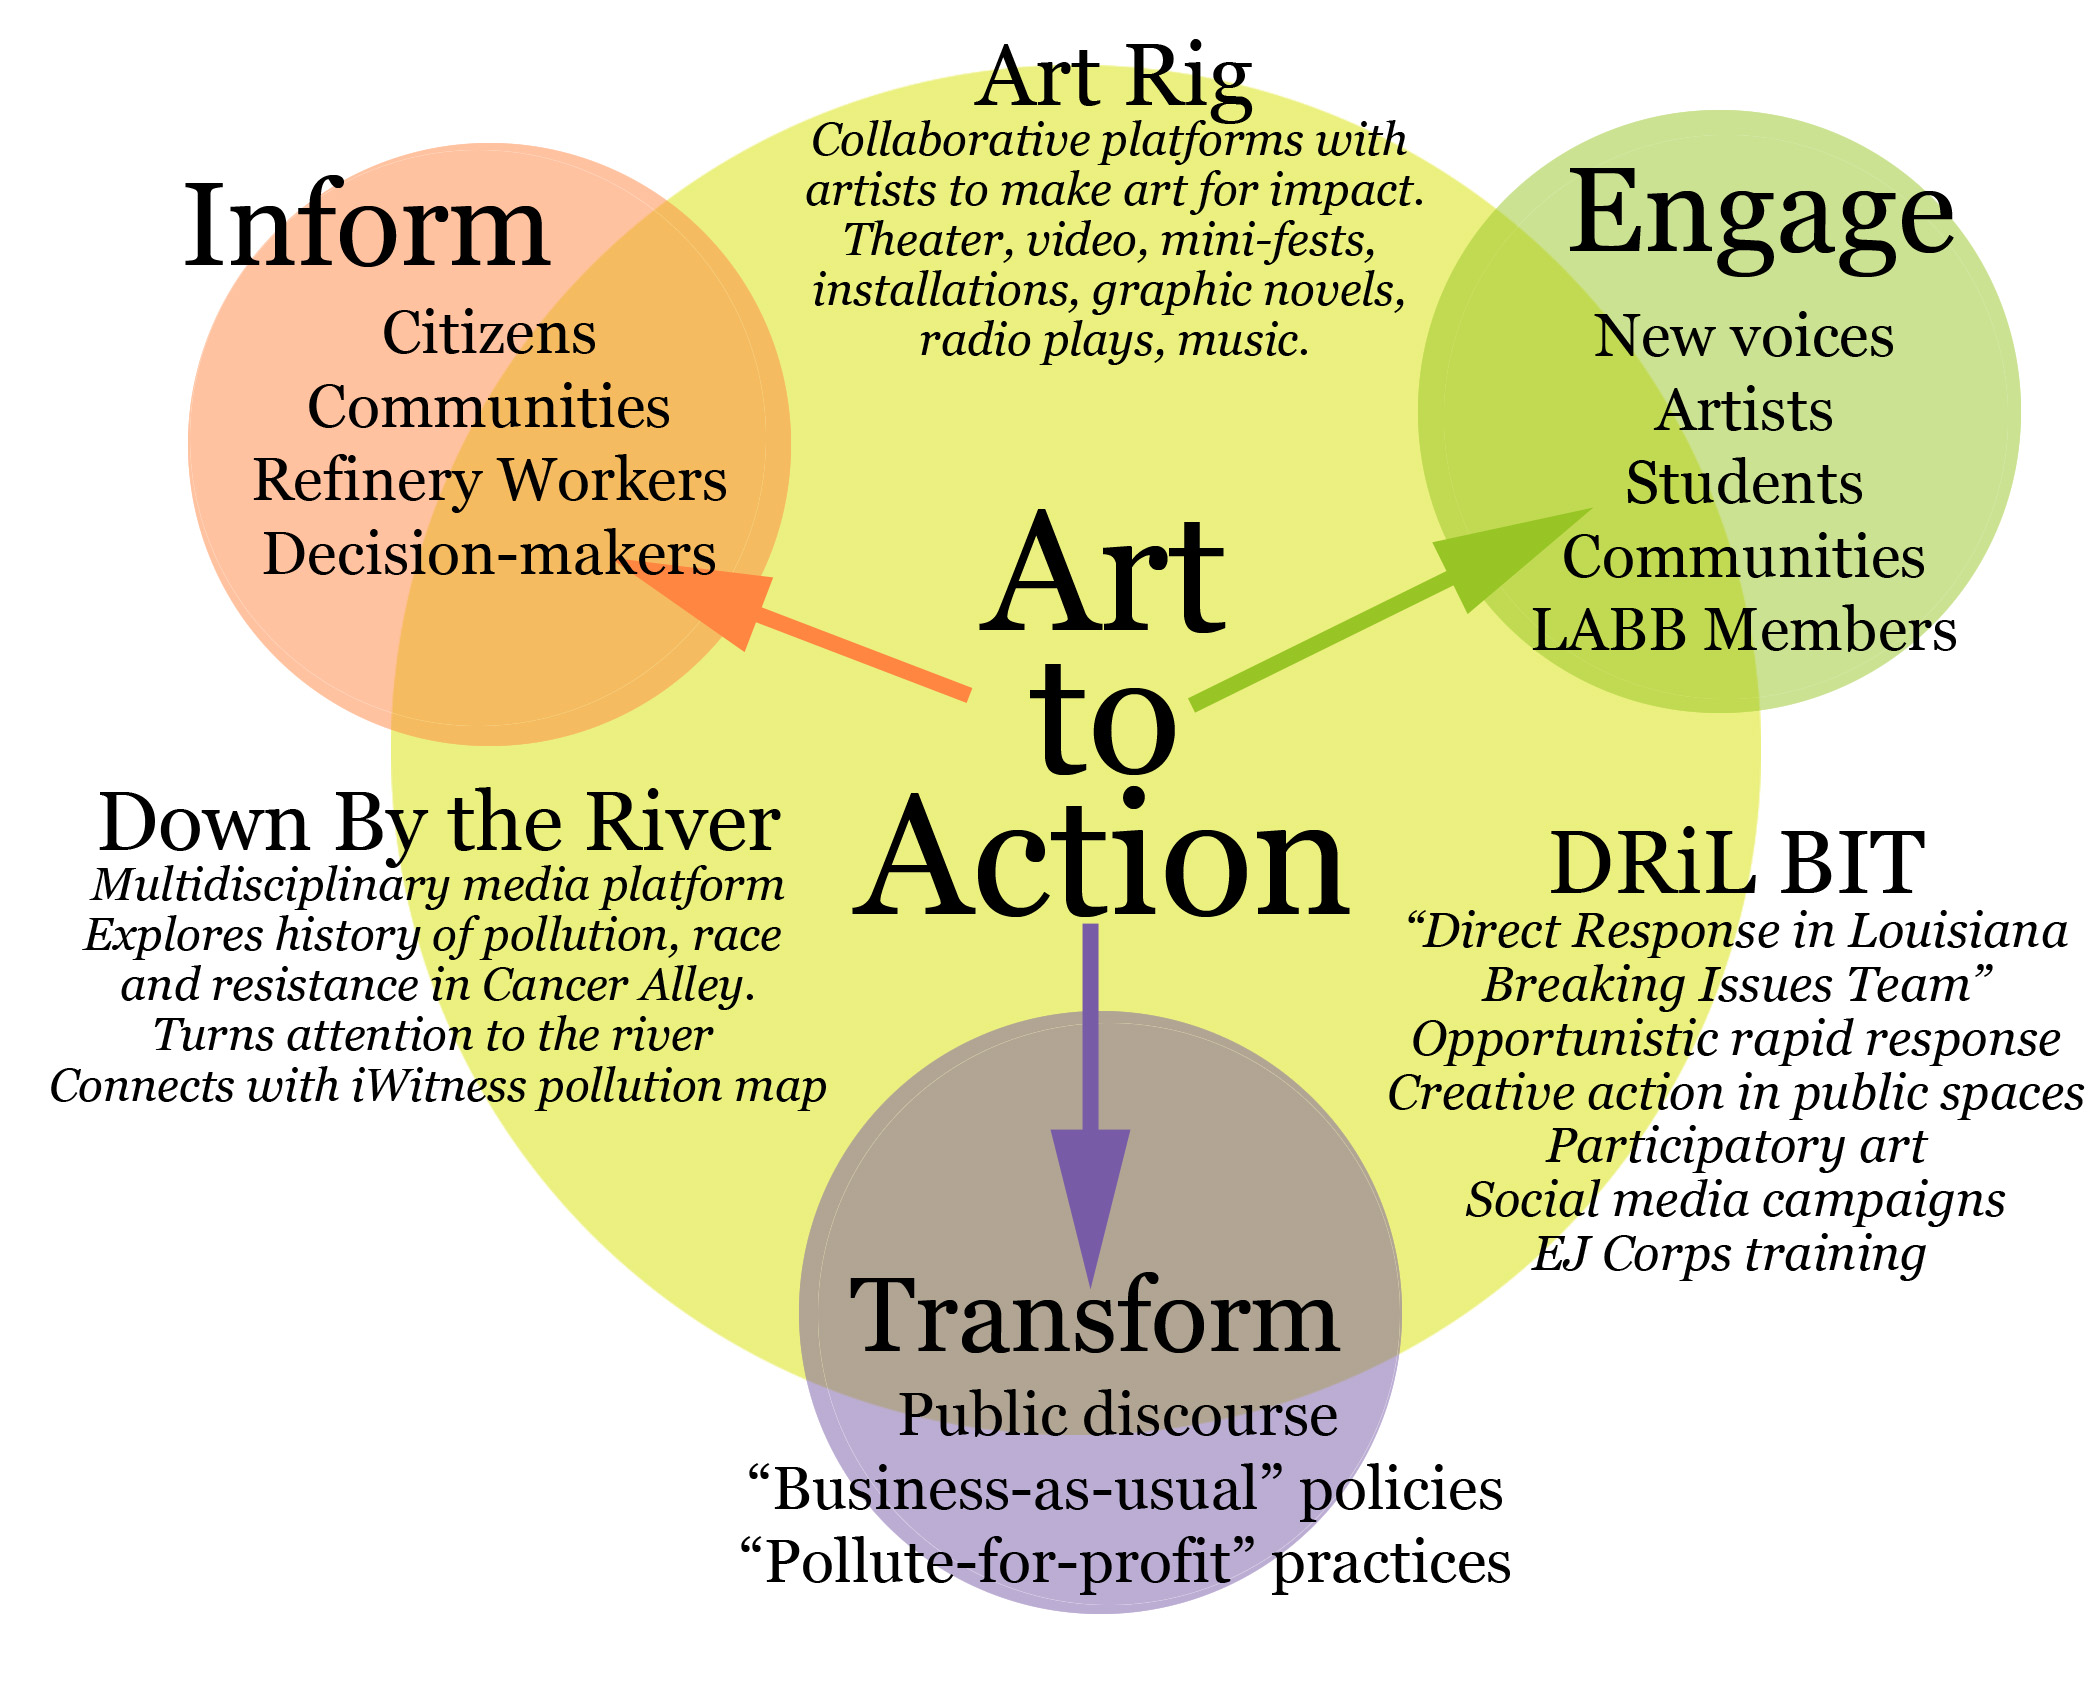 Art-to-Action Conceptual Model